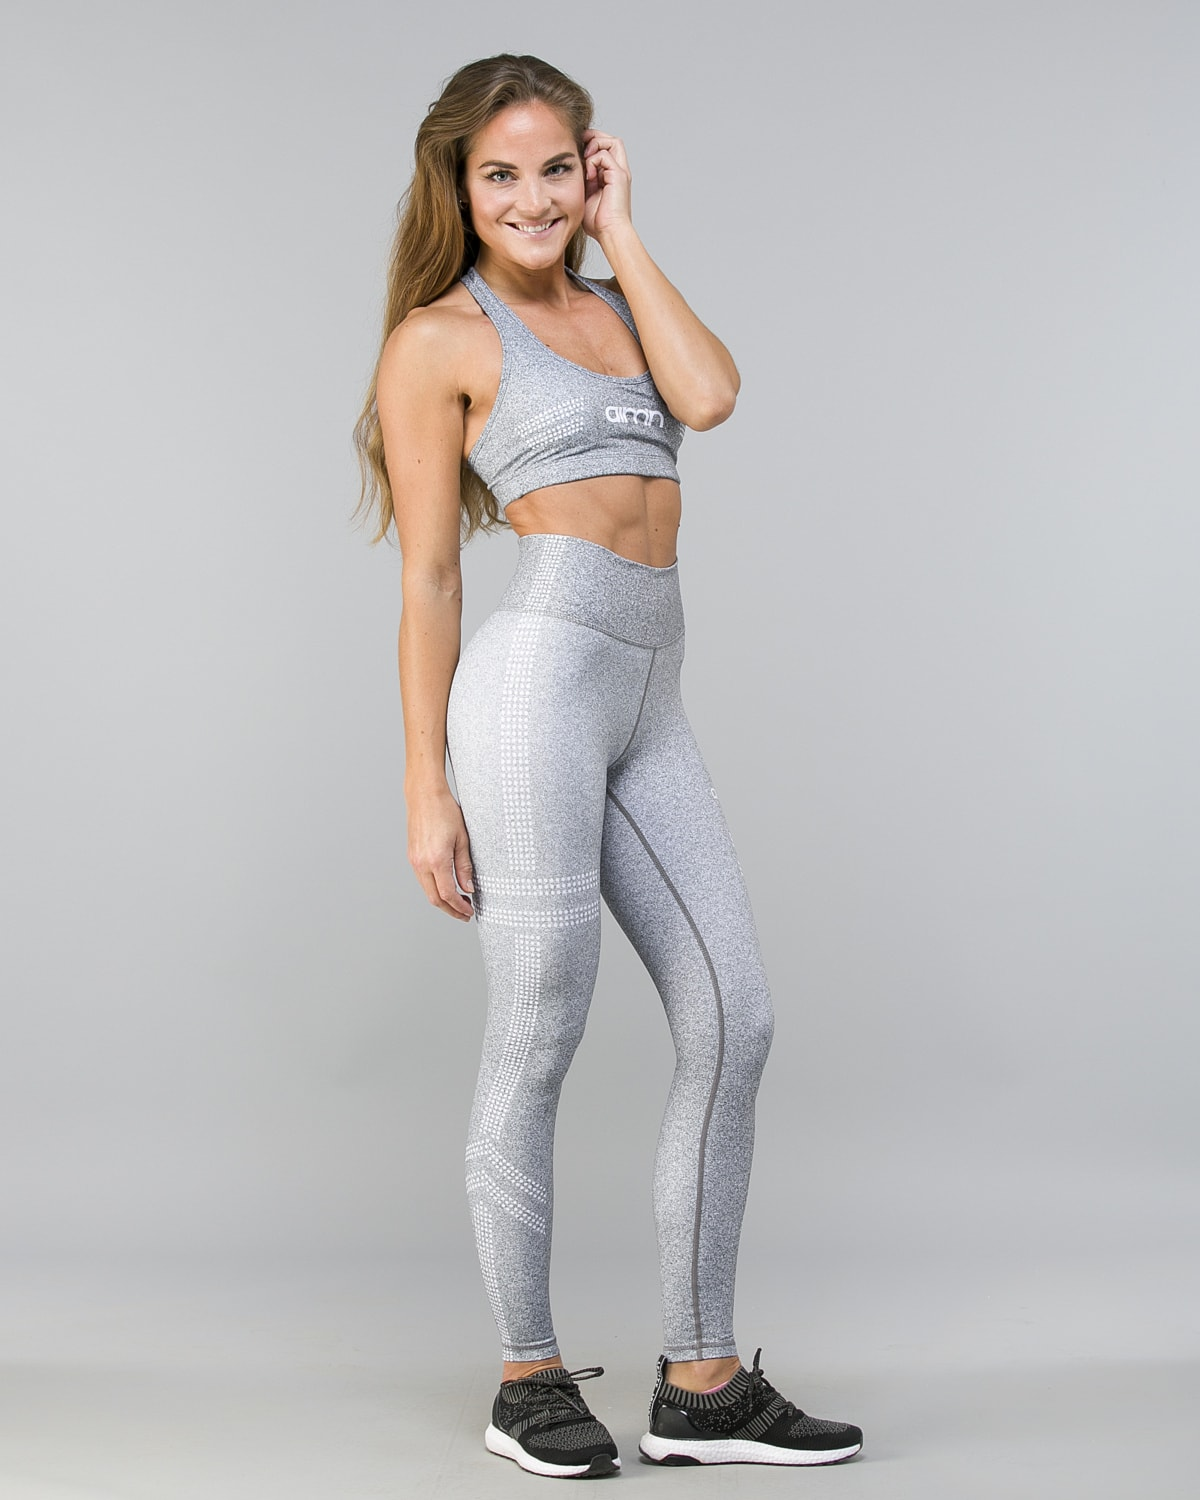 Aim'n Grey Tribe 2.0 Tights 18020017 and Bra 18030014 d